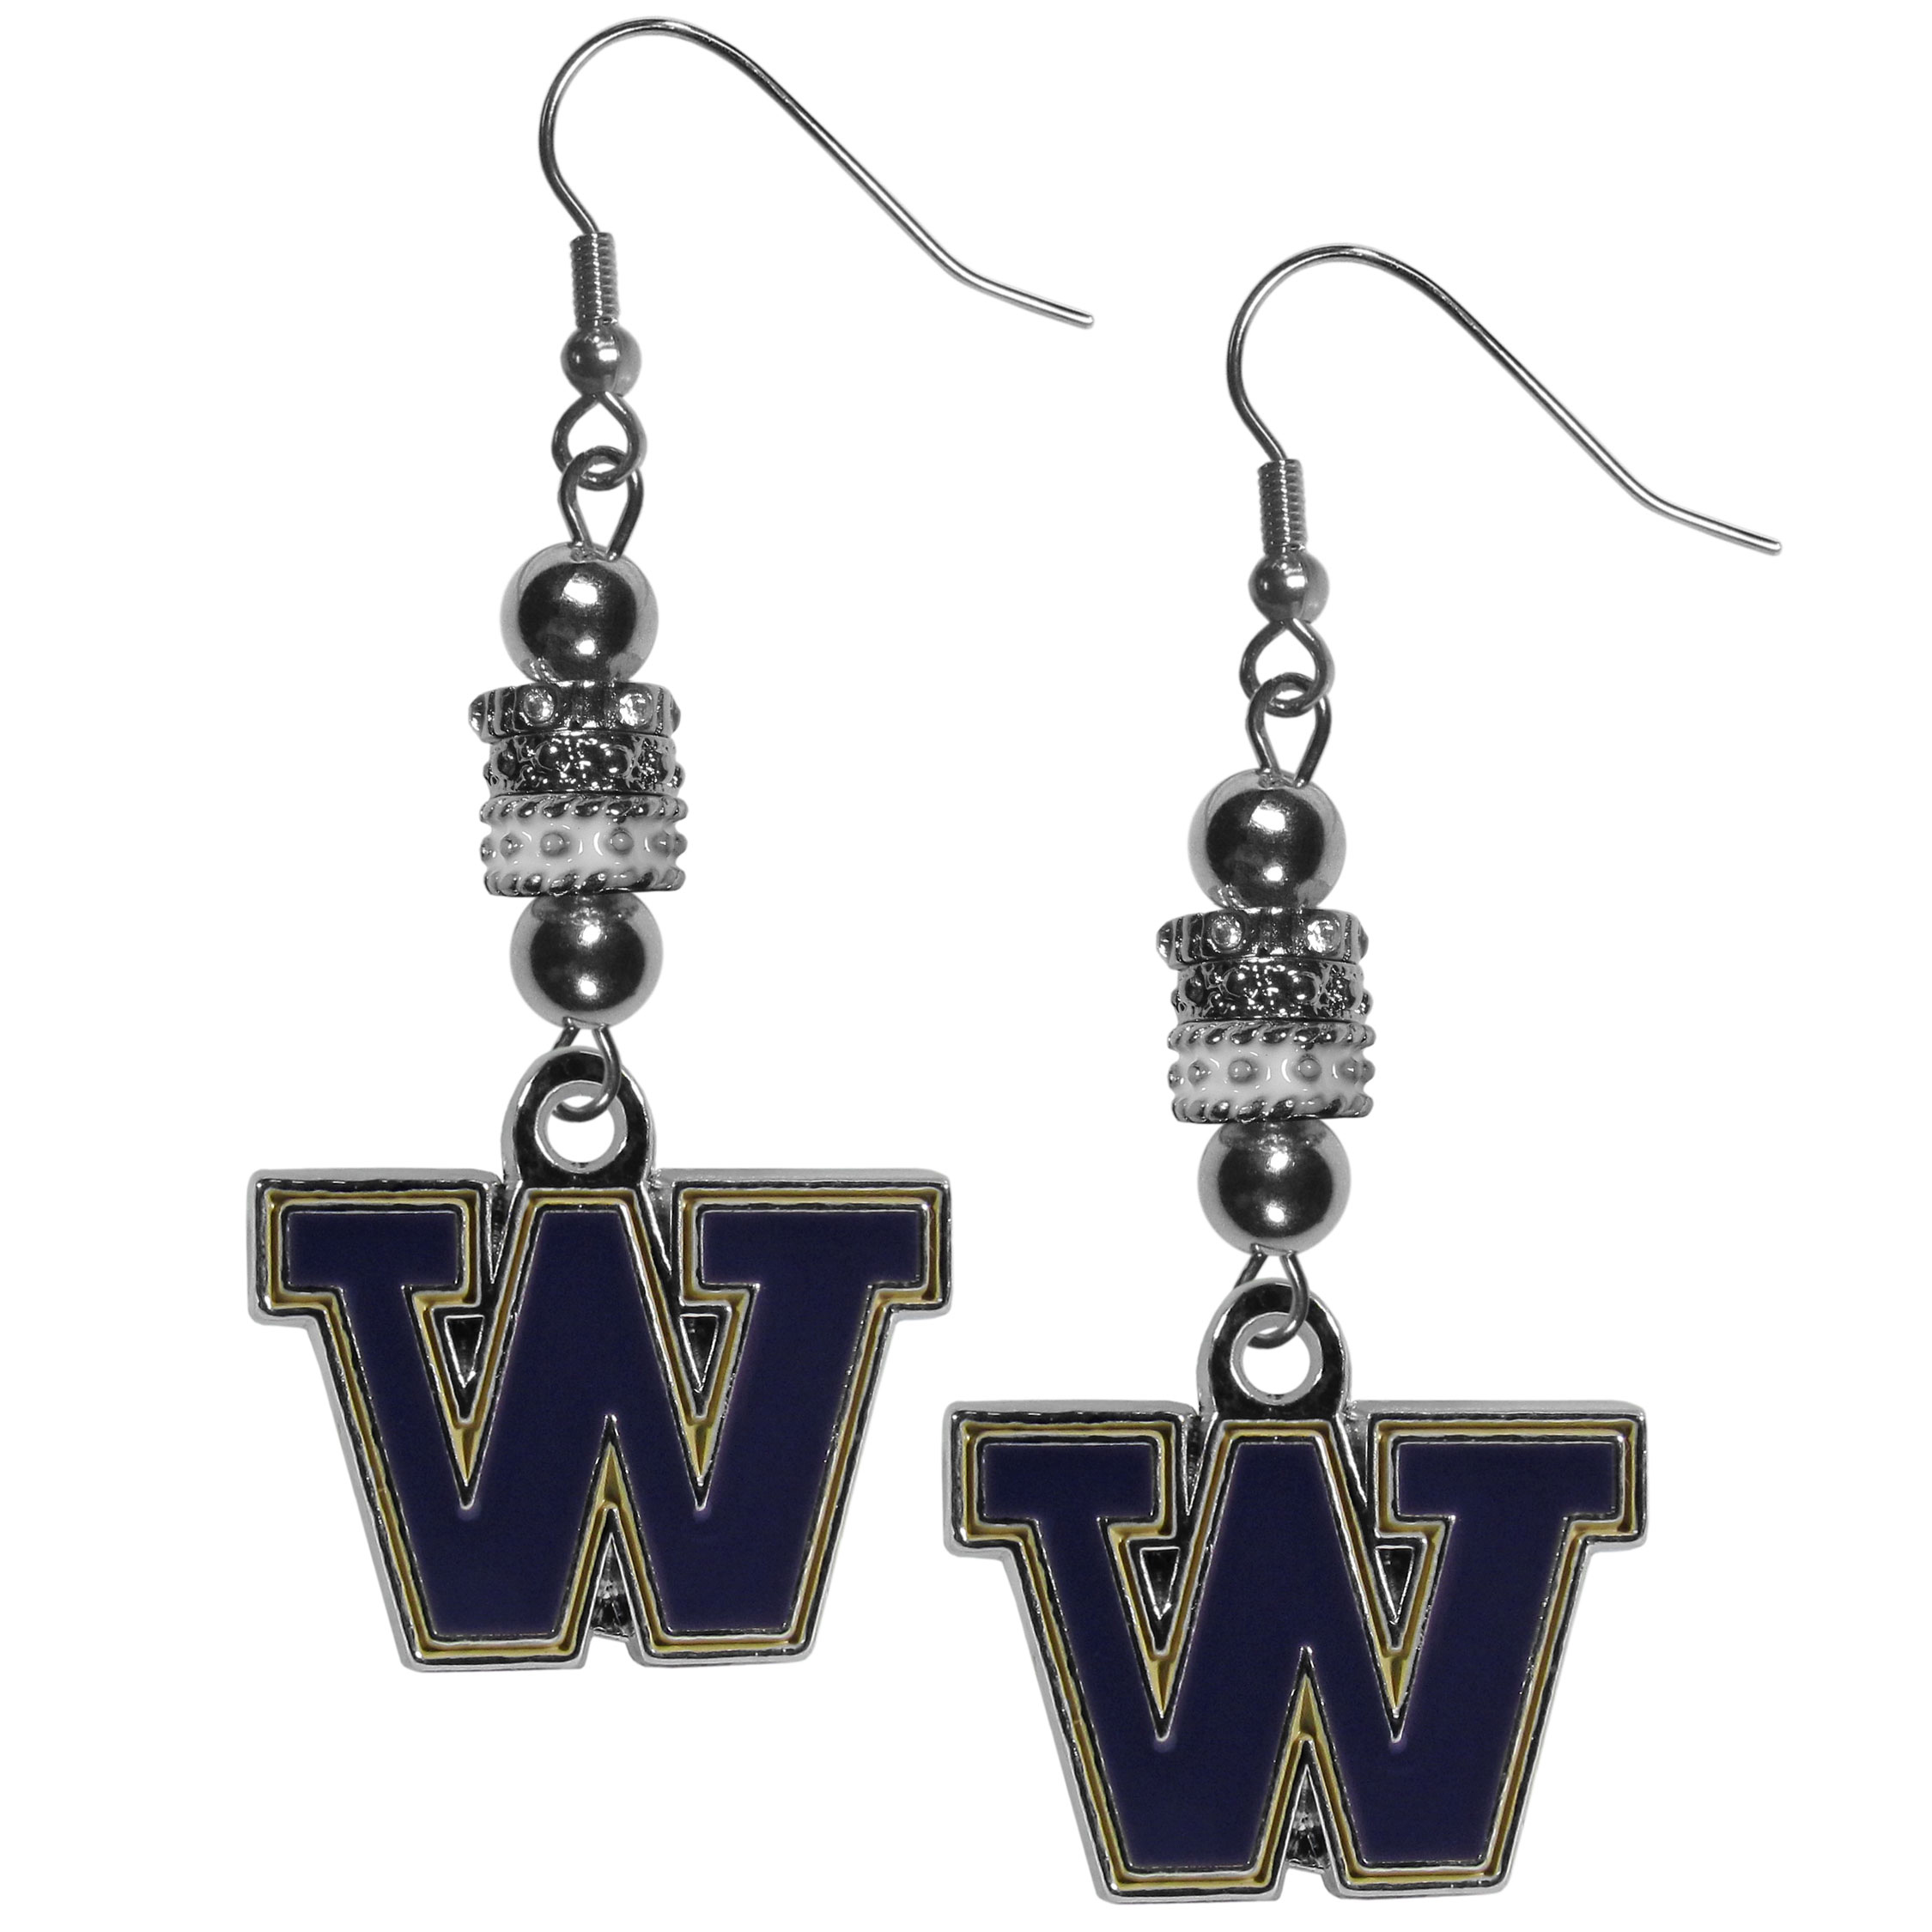 Washington Huskies Euro Bead Earrings - These beautiful euro style earrings feature 3 euro beads and a detailed Washington Huskies charm on hypoallergenic fishhook posts.